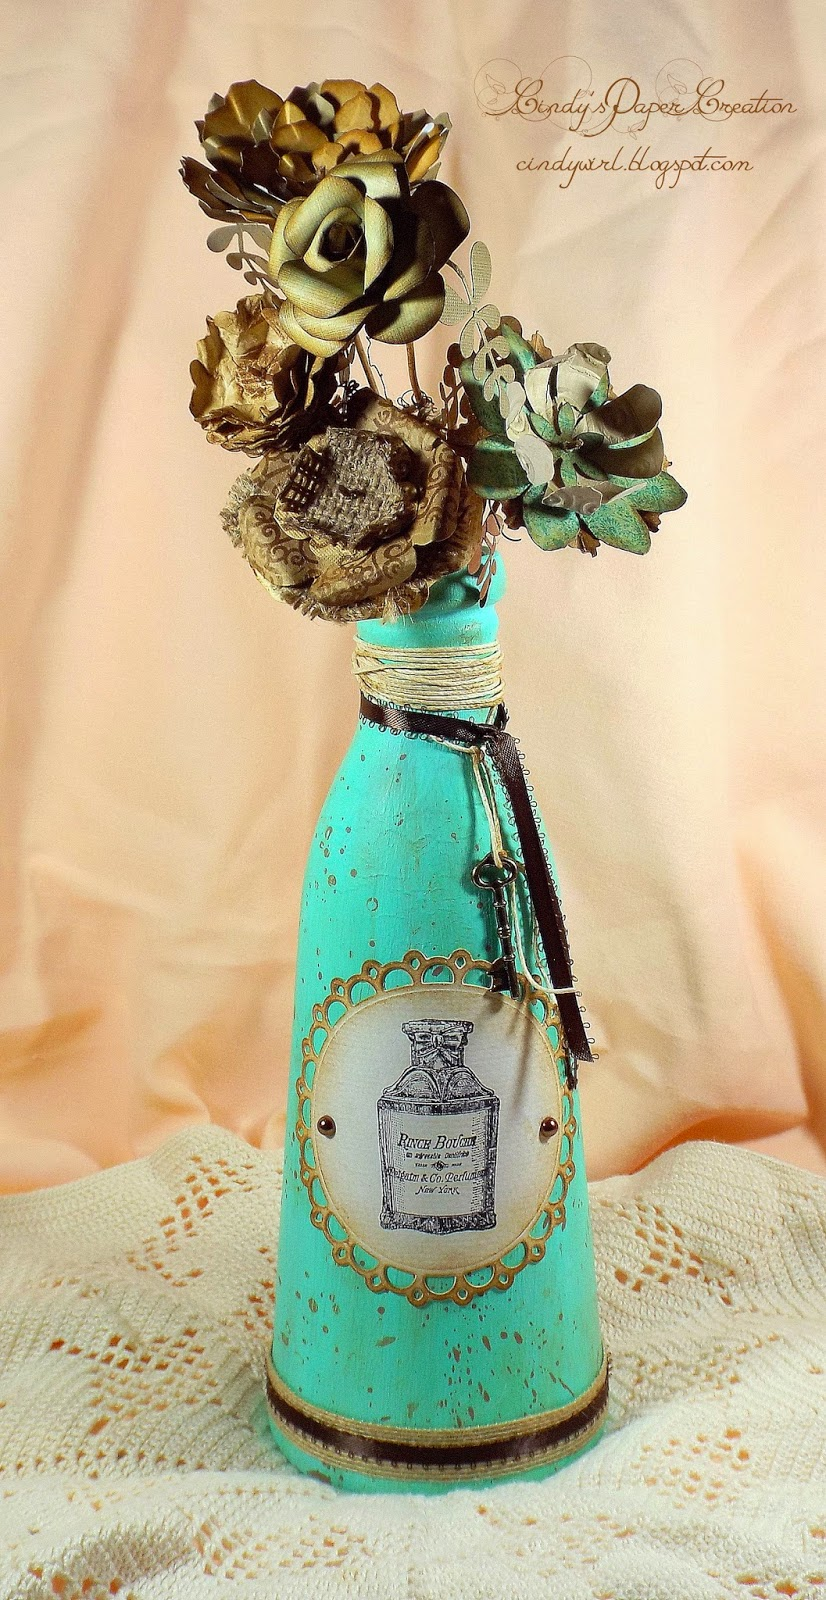 The Altered Glass Carafe by cindywirl.blogspot.com